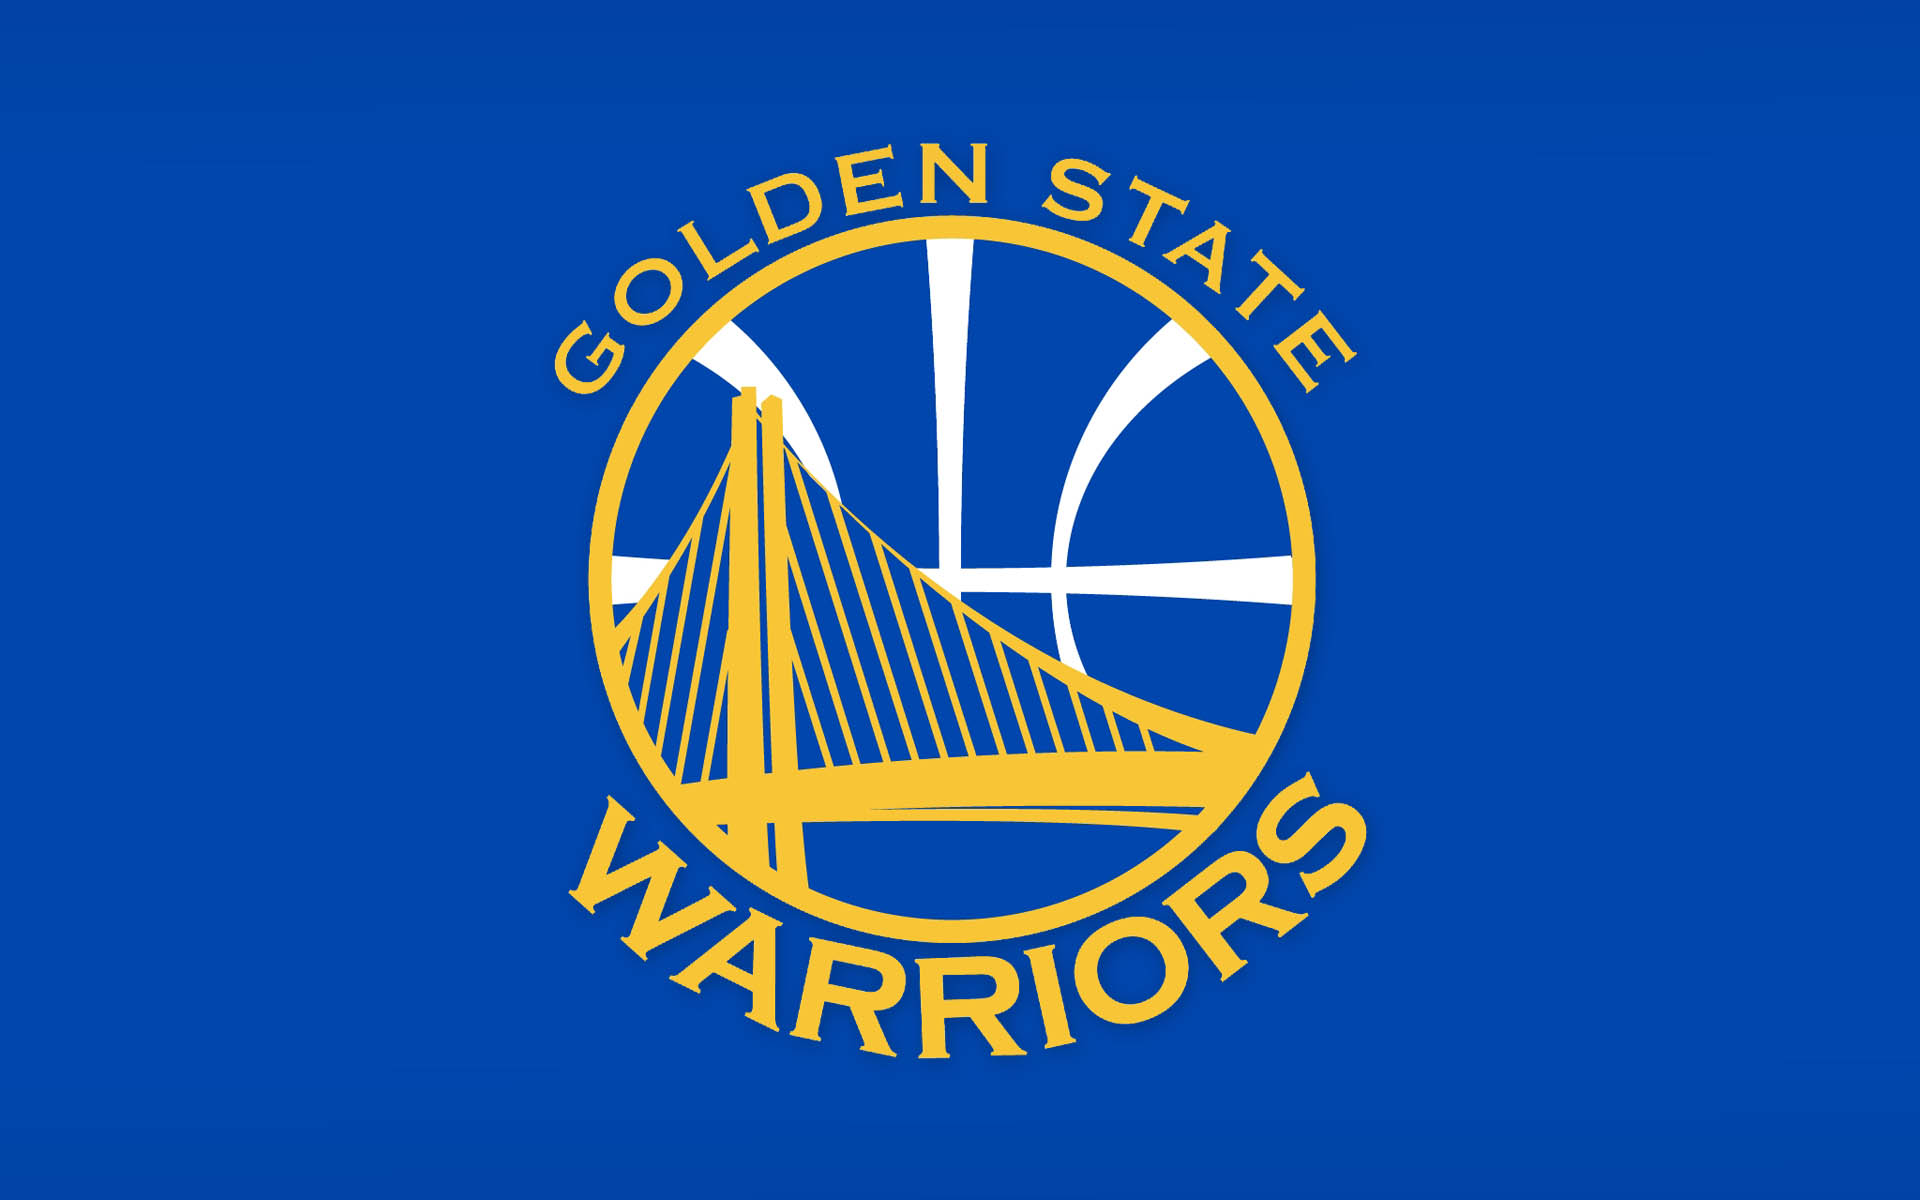 Golden State Warriors background Golden State Warriors wallpapers 1920x1200